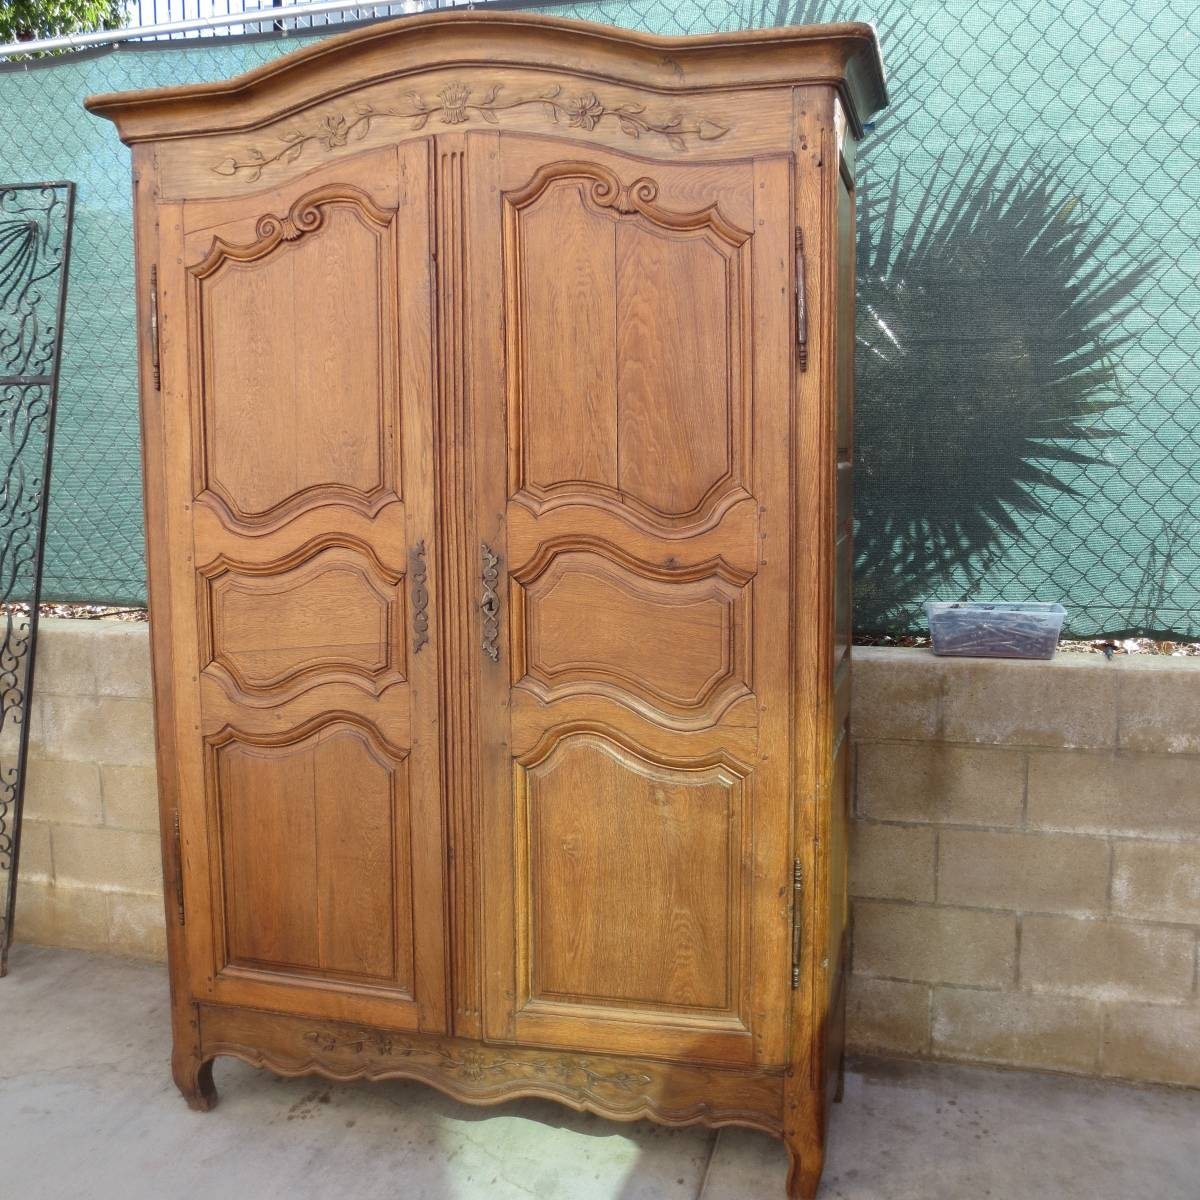 Antique Armoires And Antique Wardrobes with regard to French Antique Wardrobes (Image 6 of 15)